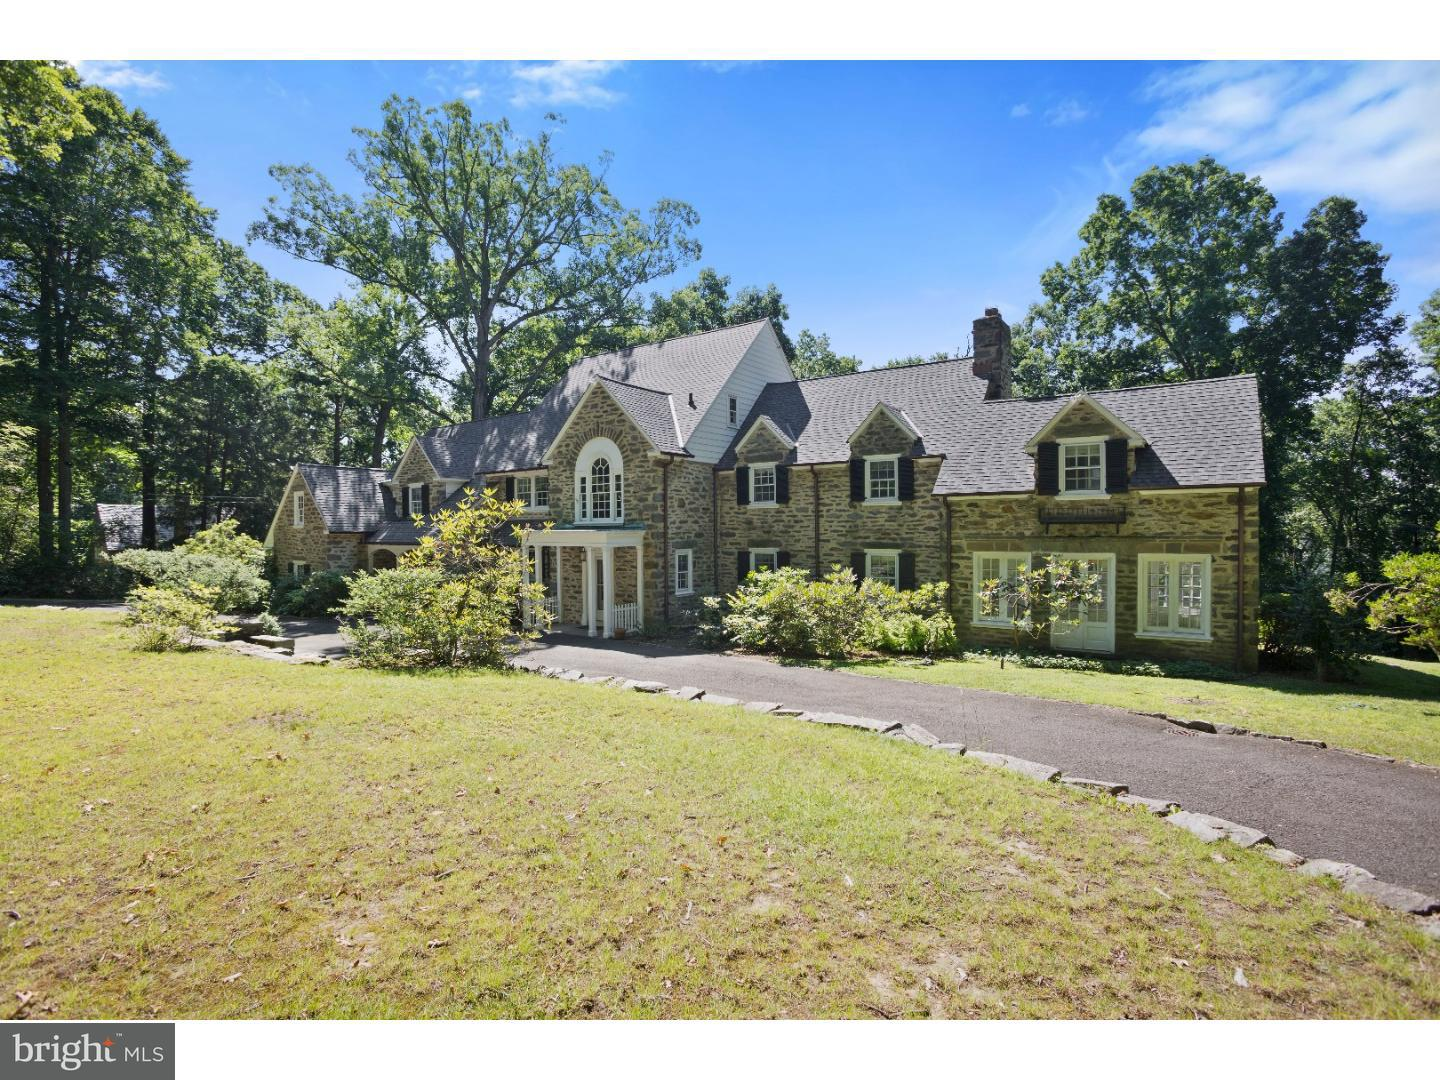 1979 COUNTRY CLUB DR, HUNTINGDON VALLEY - Listed at $749,000, HUNTINGDON VALLEY